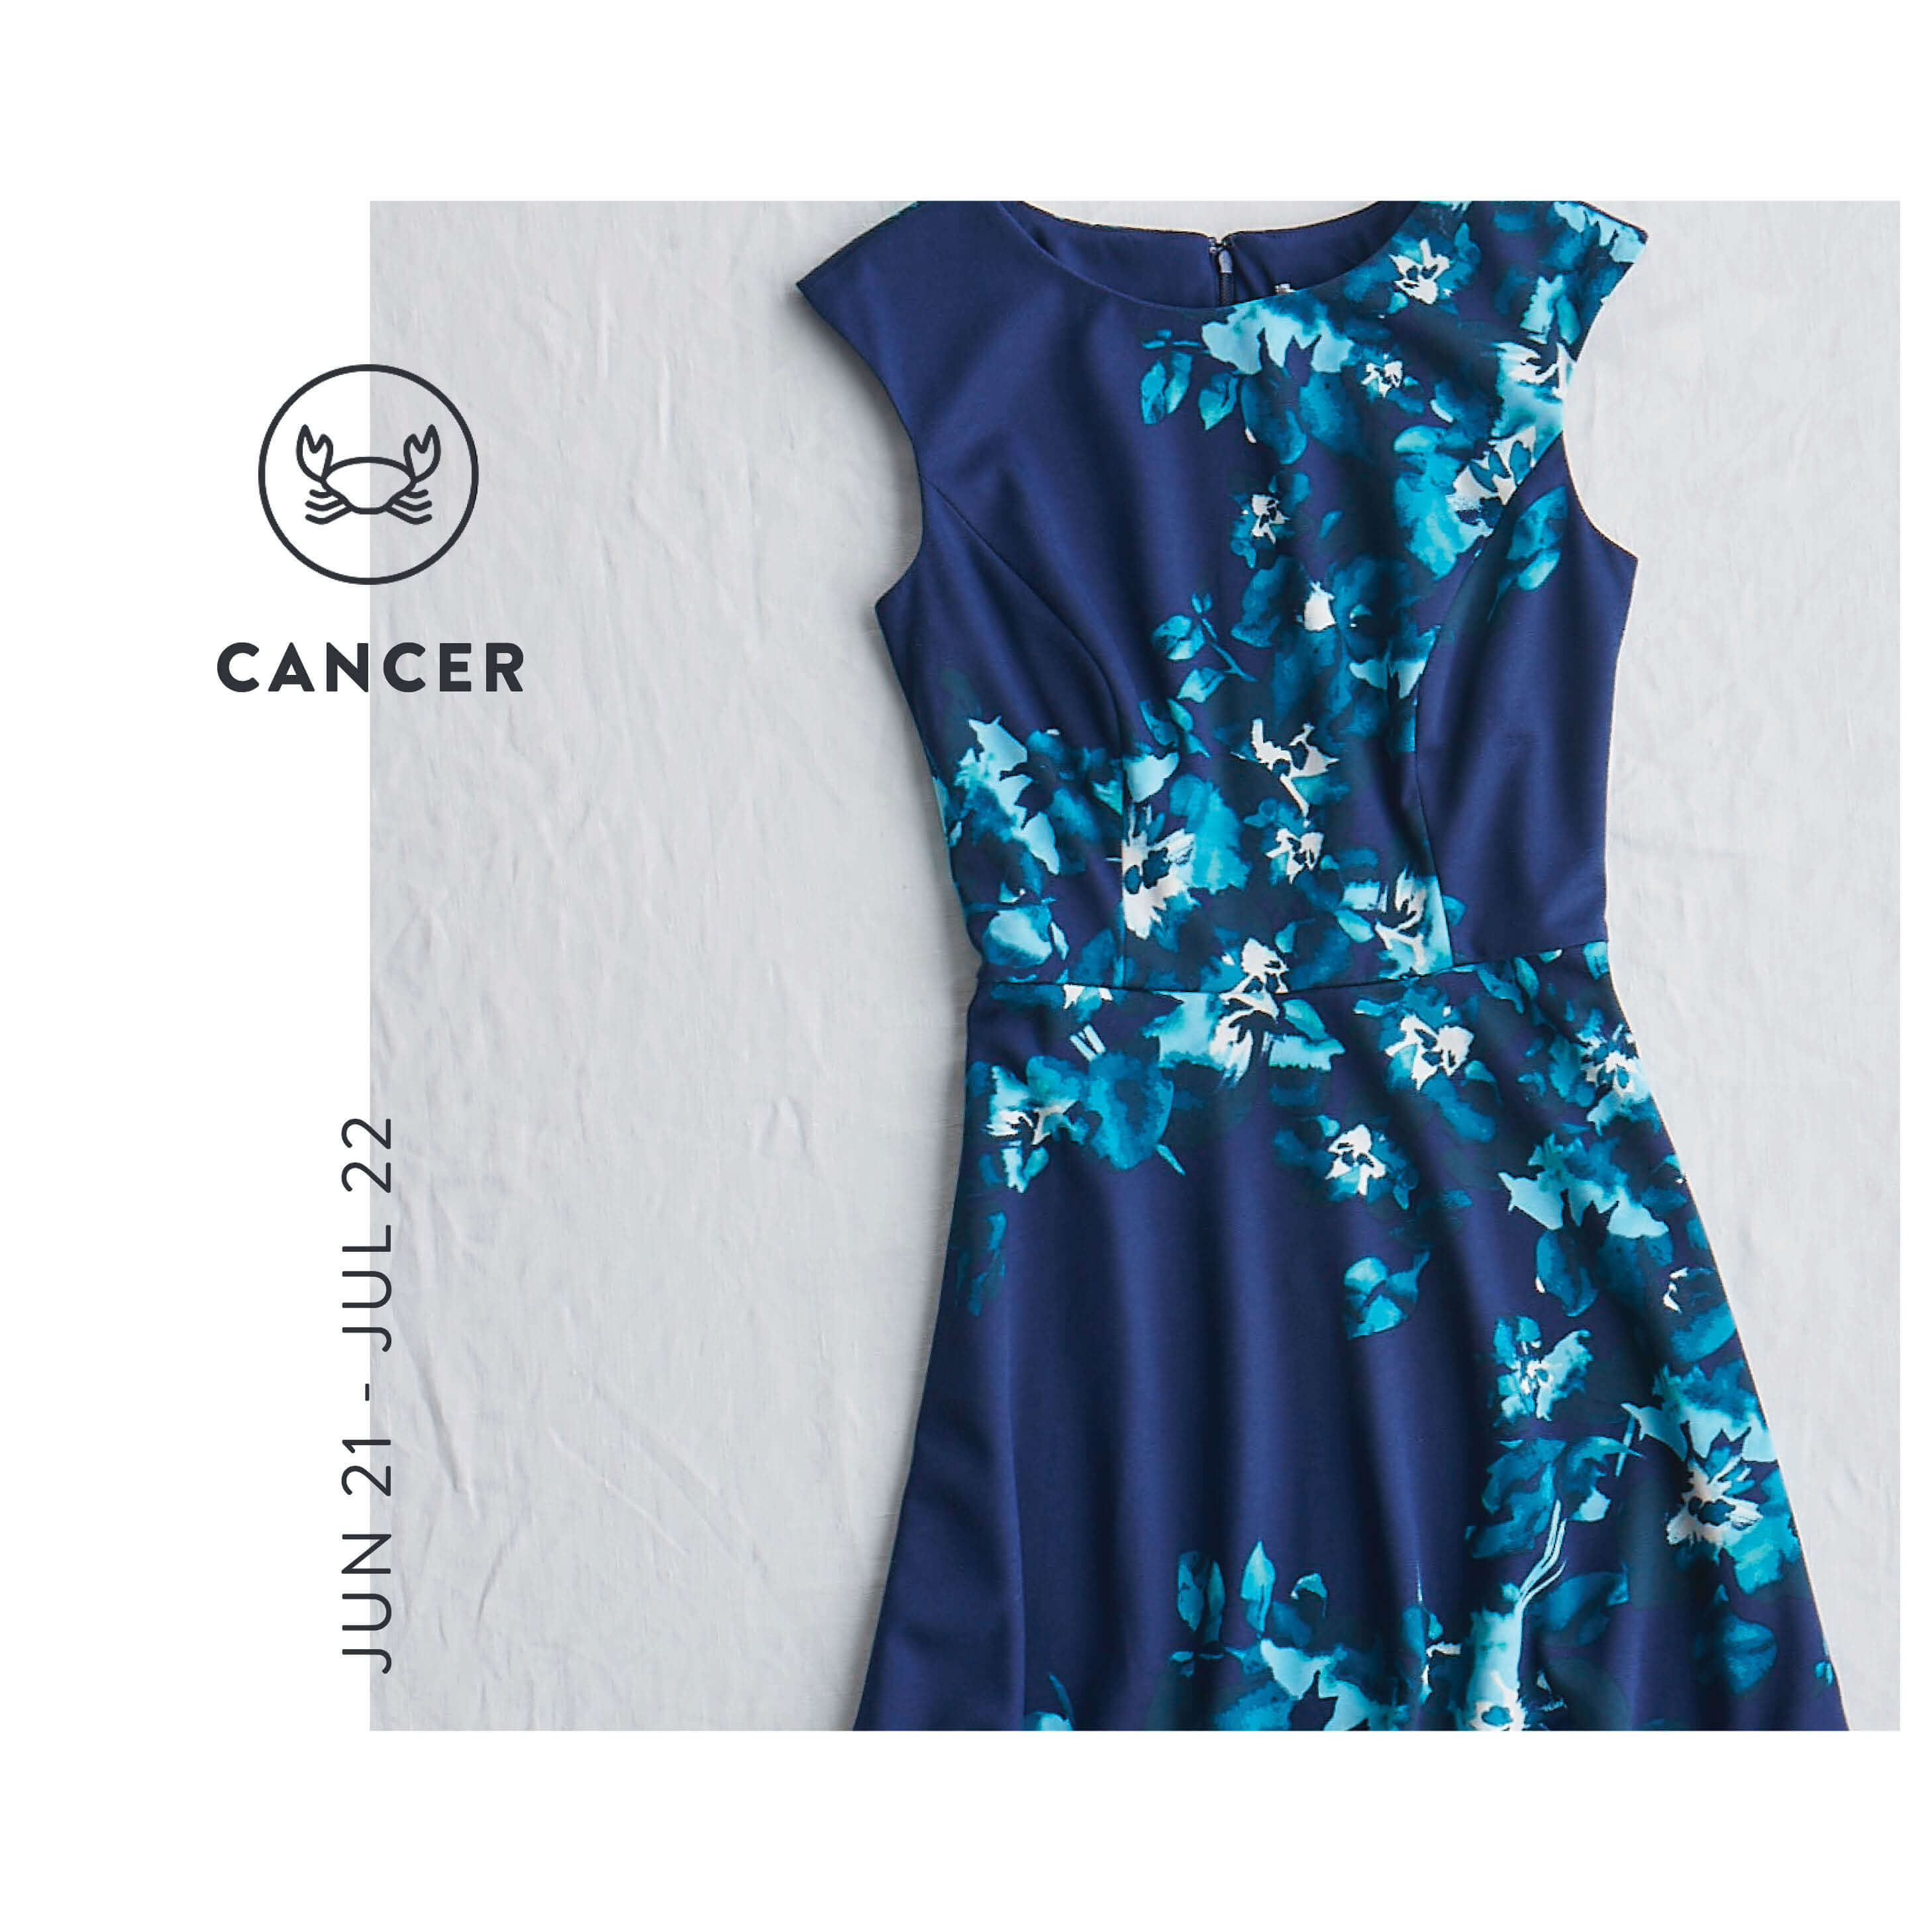 cancer style